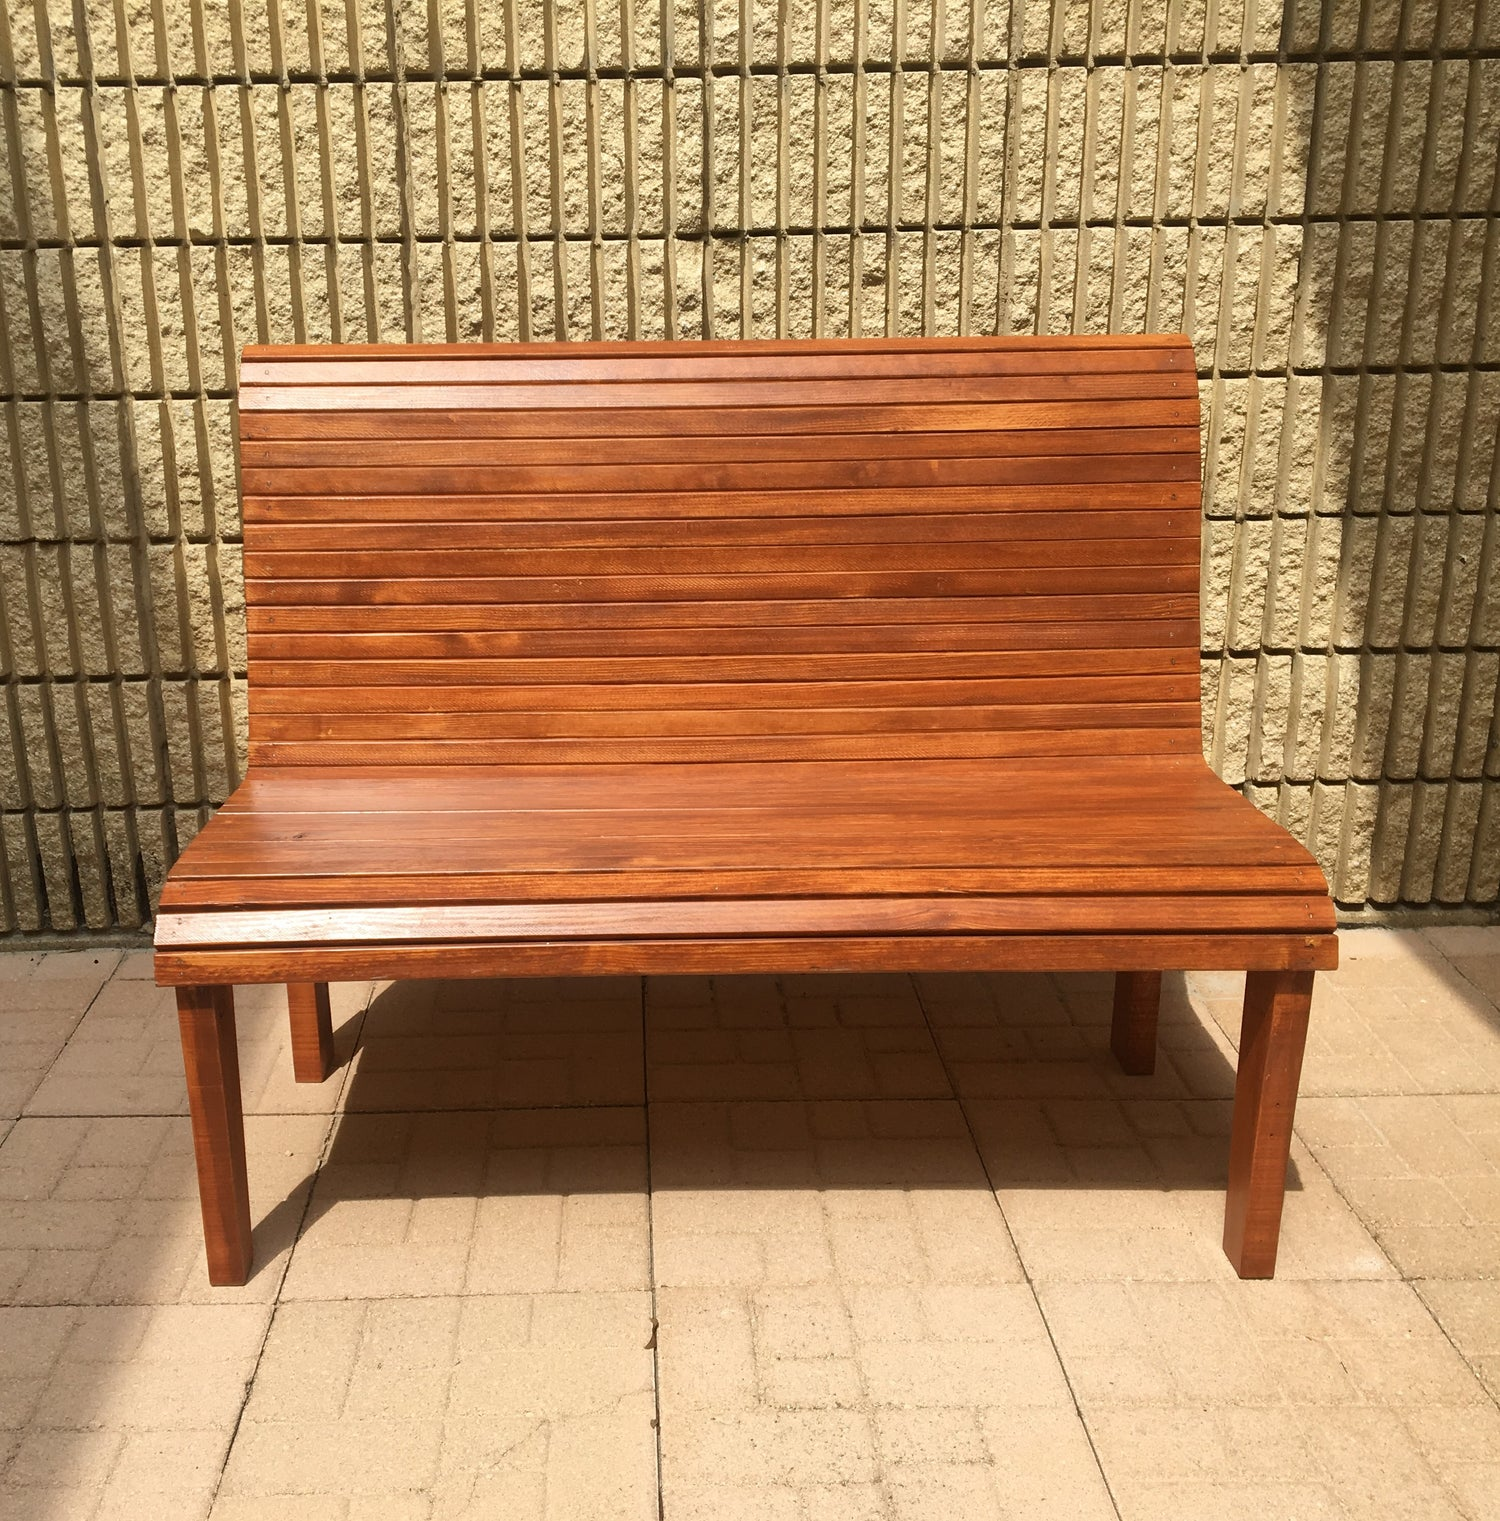 Image of Wooden Bench